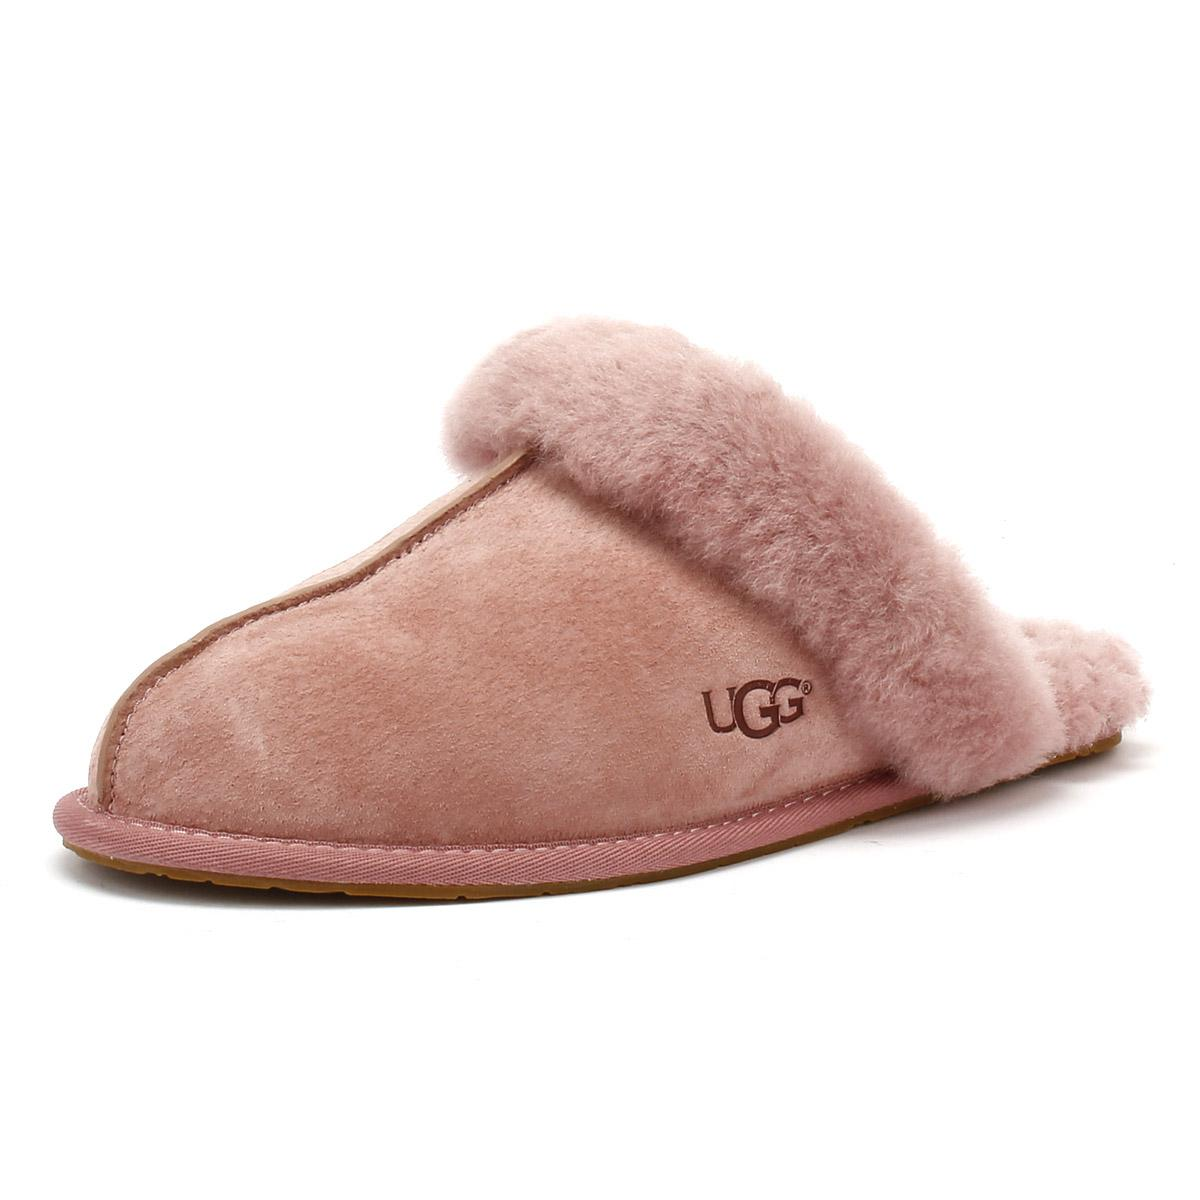 Ugg Scuffette Ii Womens Pink Dawn Slippers Lyst View Fullscreen